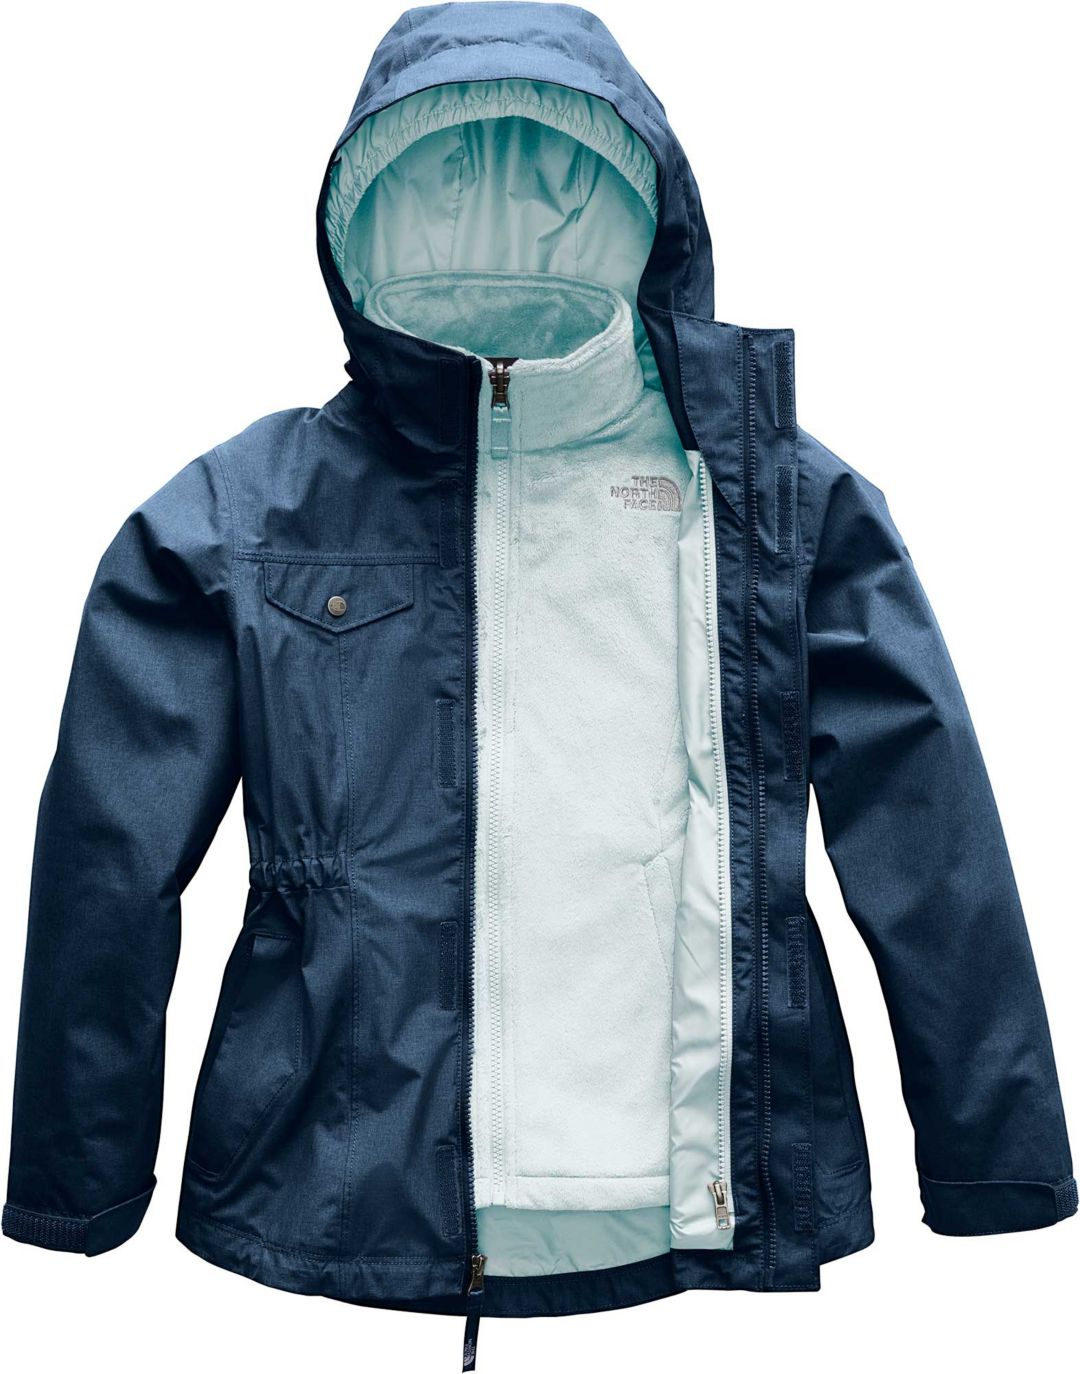 d6065cff9 The North Face Girls' Osolita 2.0 Triclimate Jacket | Field & Stream